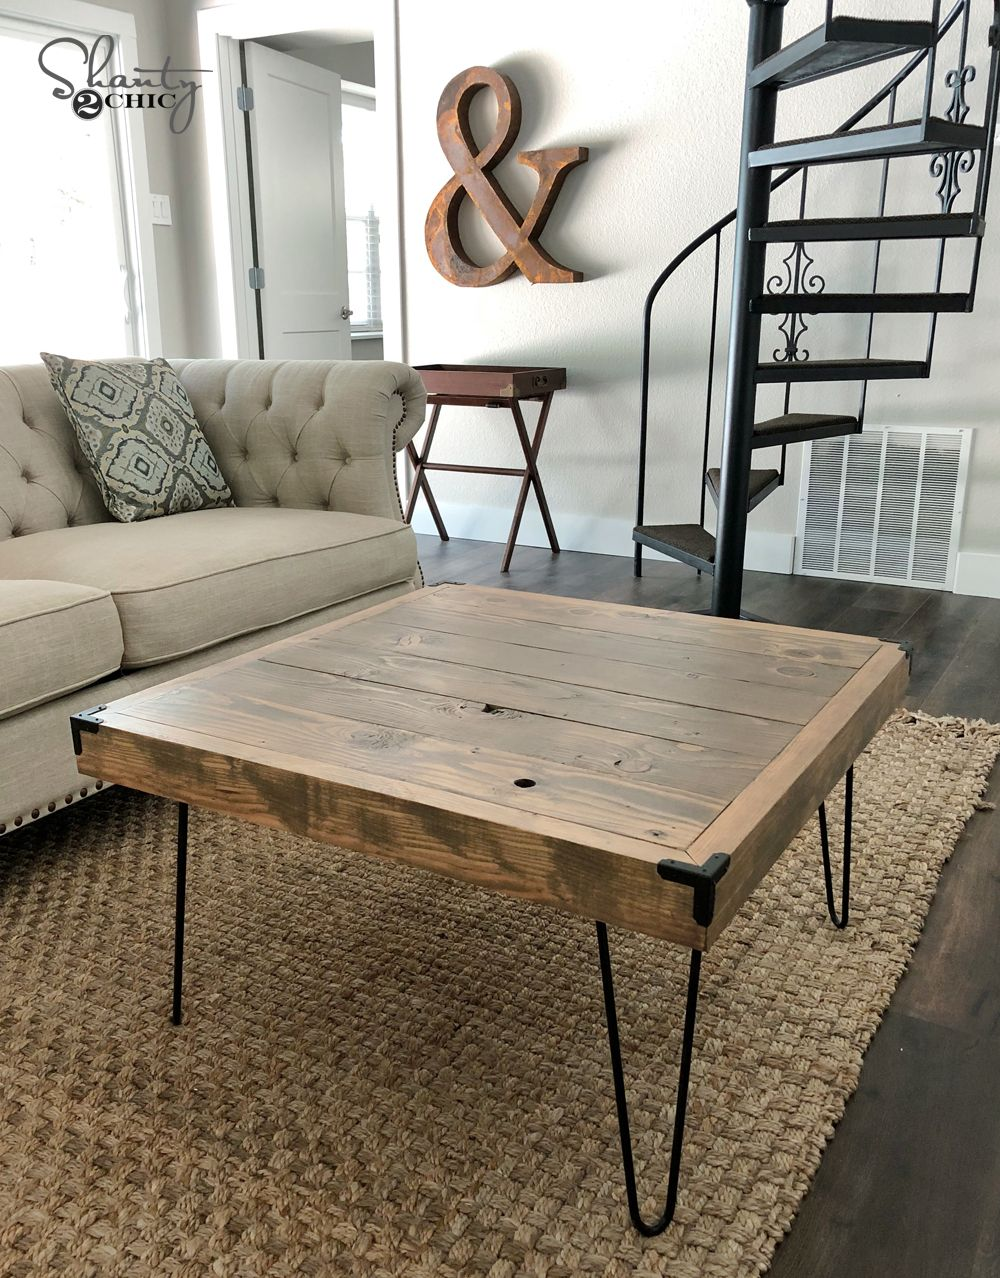 Diy 50 Hairpin Coffee Table By Shanty2chic Coffee Table Farmhouse Chic Coffee Table Coffee Table